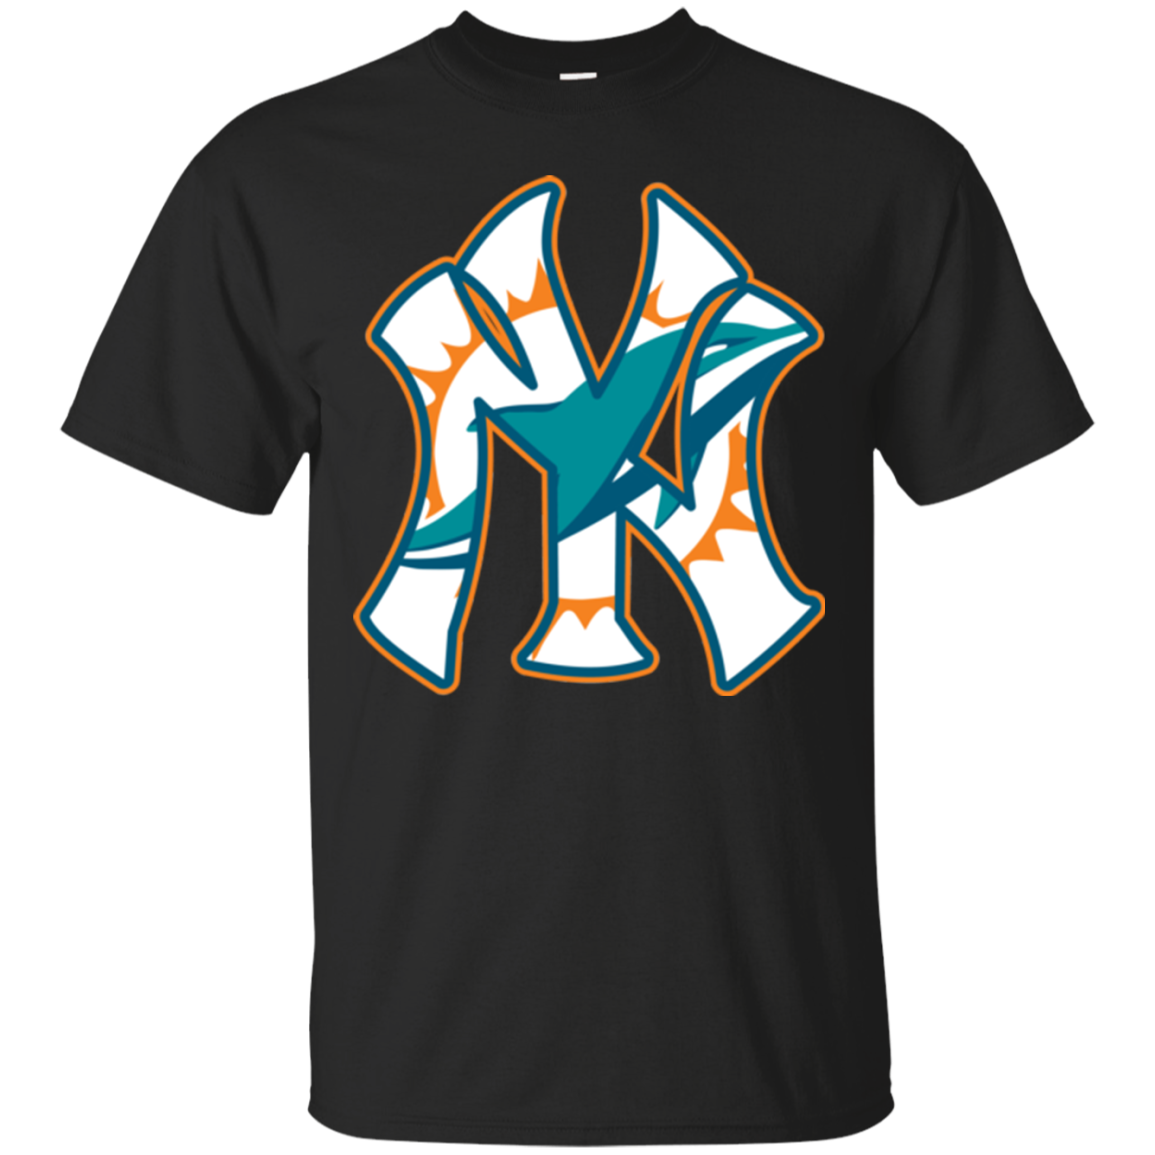 Miami Dolphins New York Yankees T Shirts Hoodies Sweatshirts Yankees T Shirt Hoodie Shirt Sweatshirts Hoodie